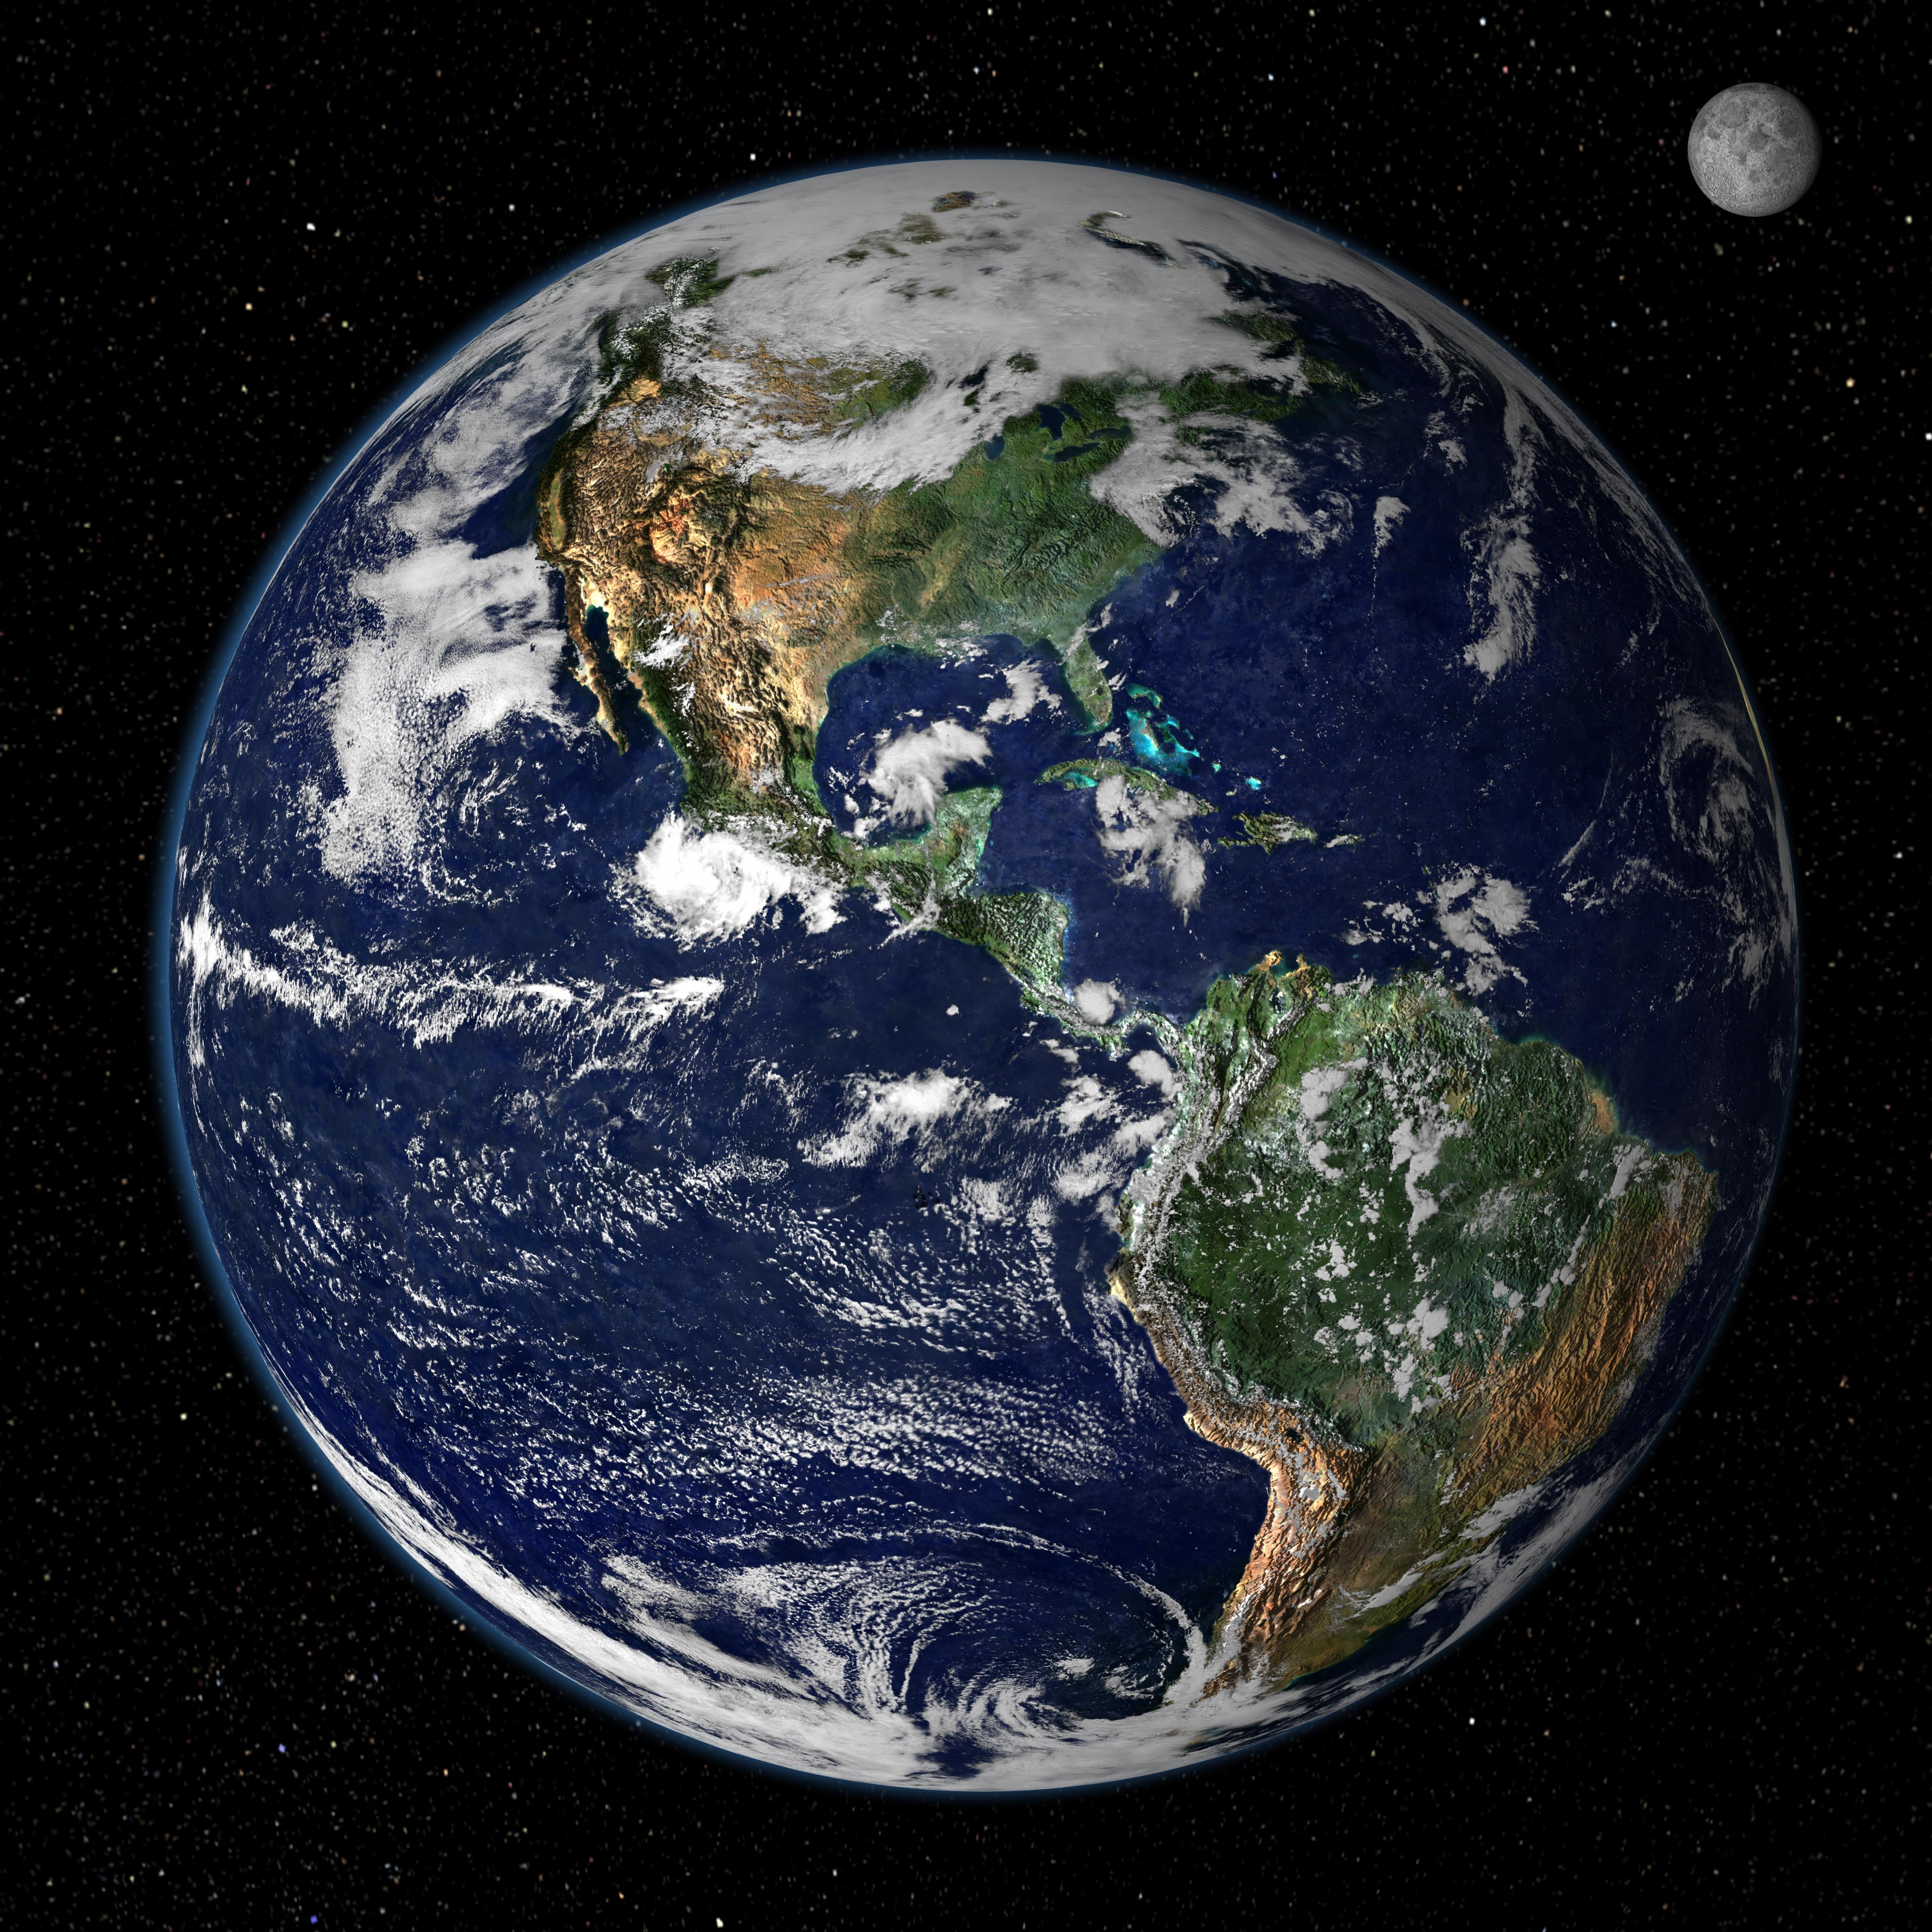 File:Earth from Space jpg - Wikimedia Commons